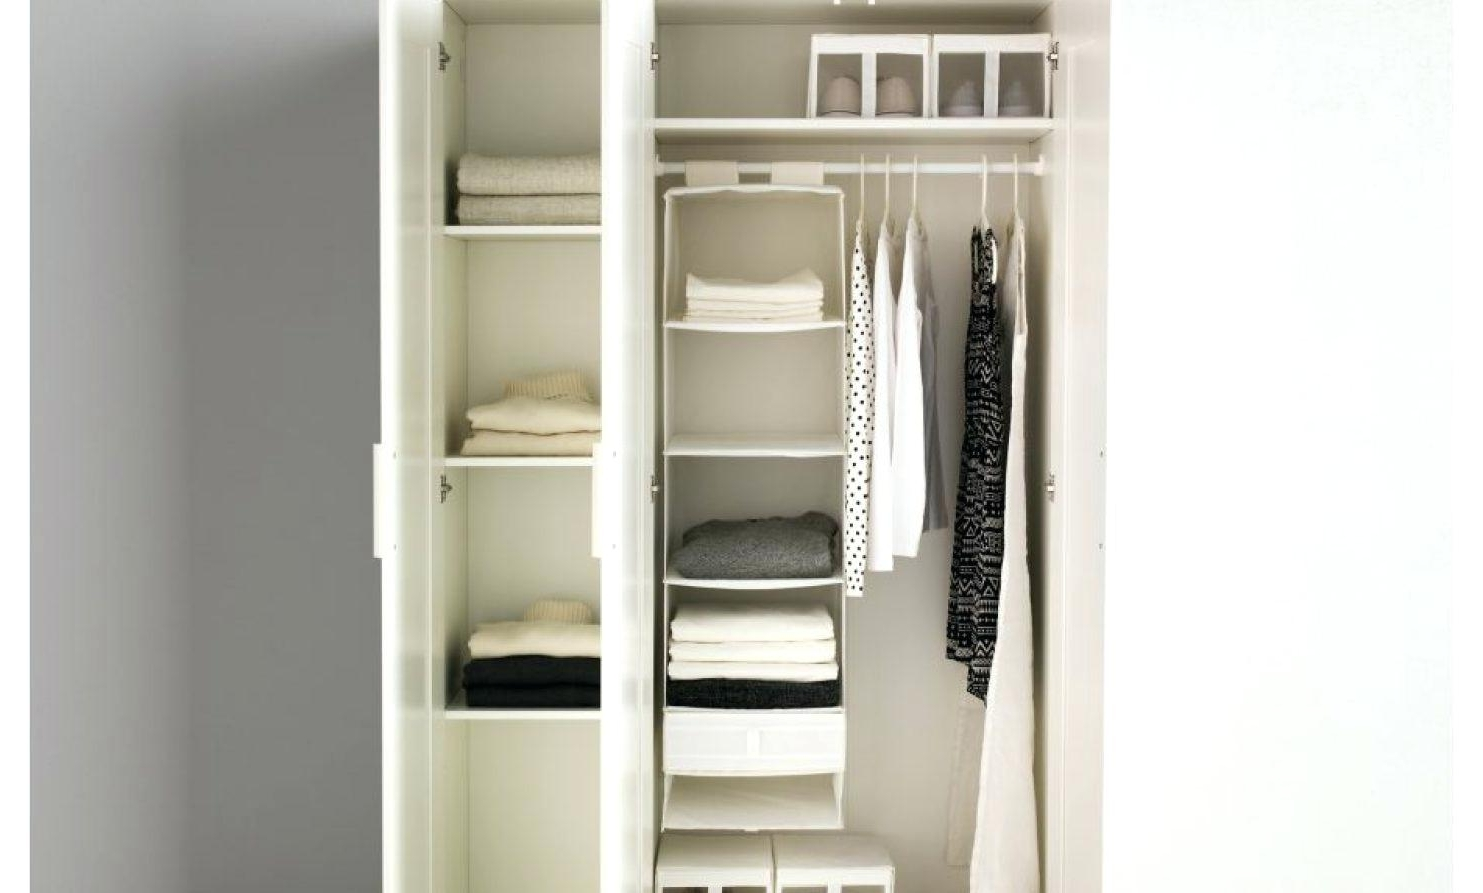 2018 latest double wardrobes hanging rail and supports well liked storageroseville page 13 walk in wardrobe designs view 15 of 15 sisterspd